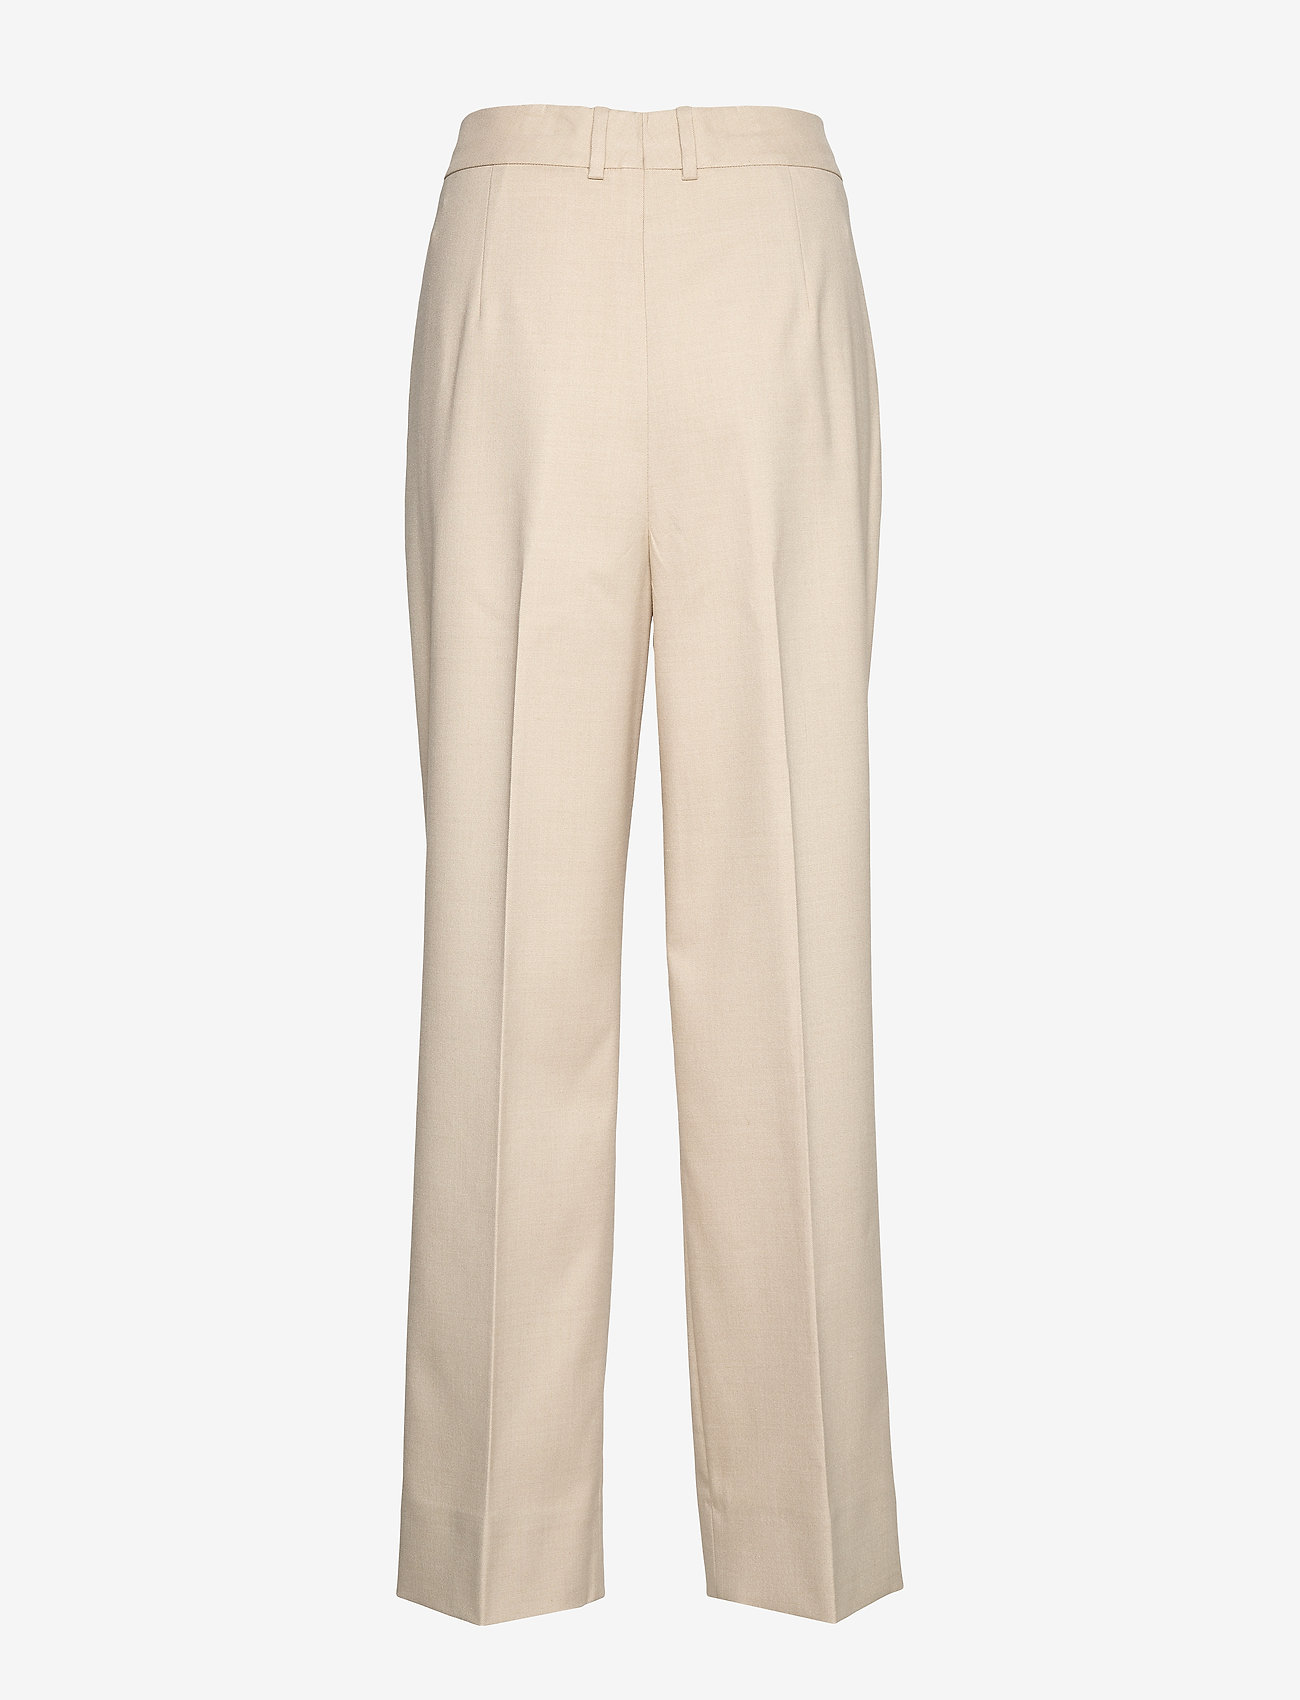 Louisamay (Nature) (1679.40 kr) - By Malene Birger